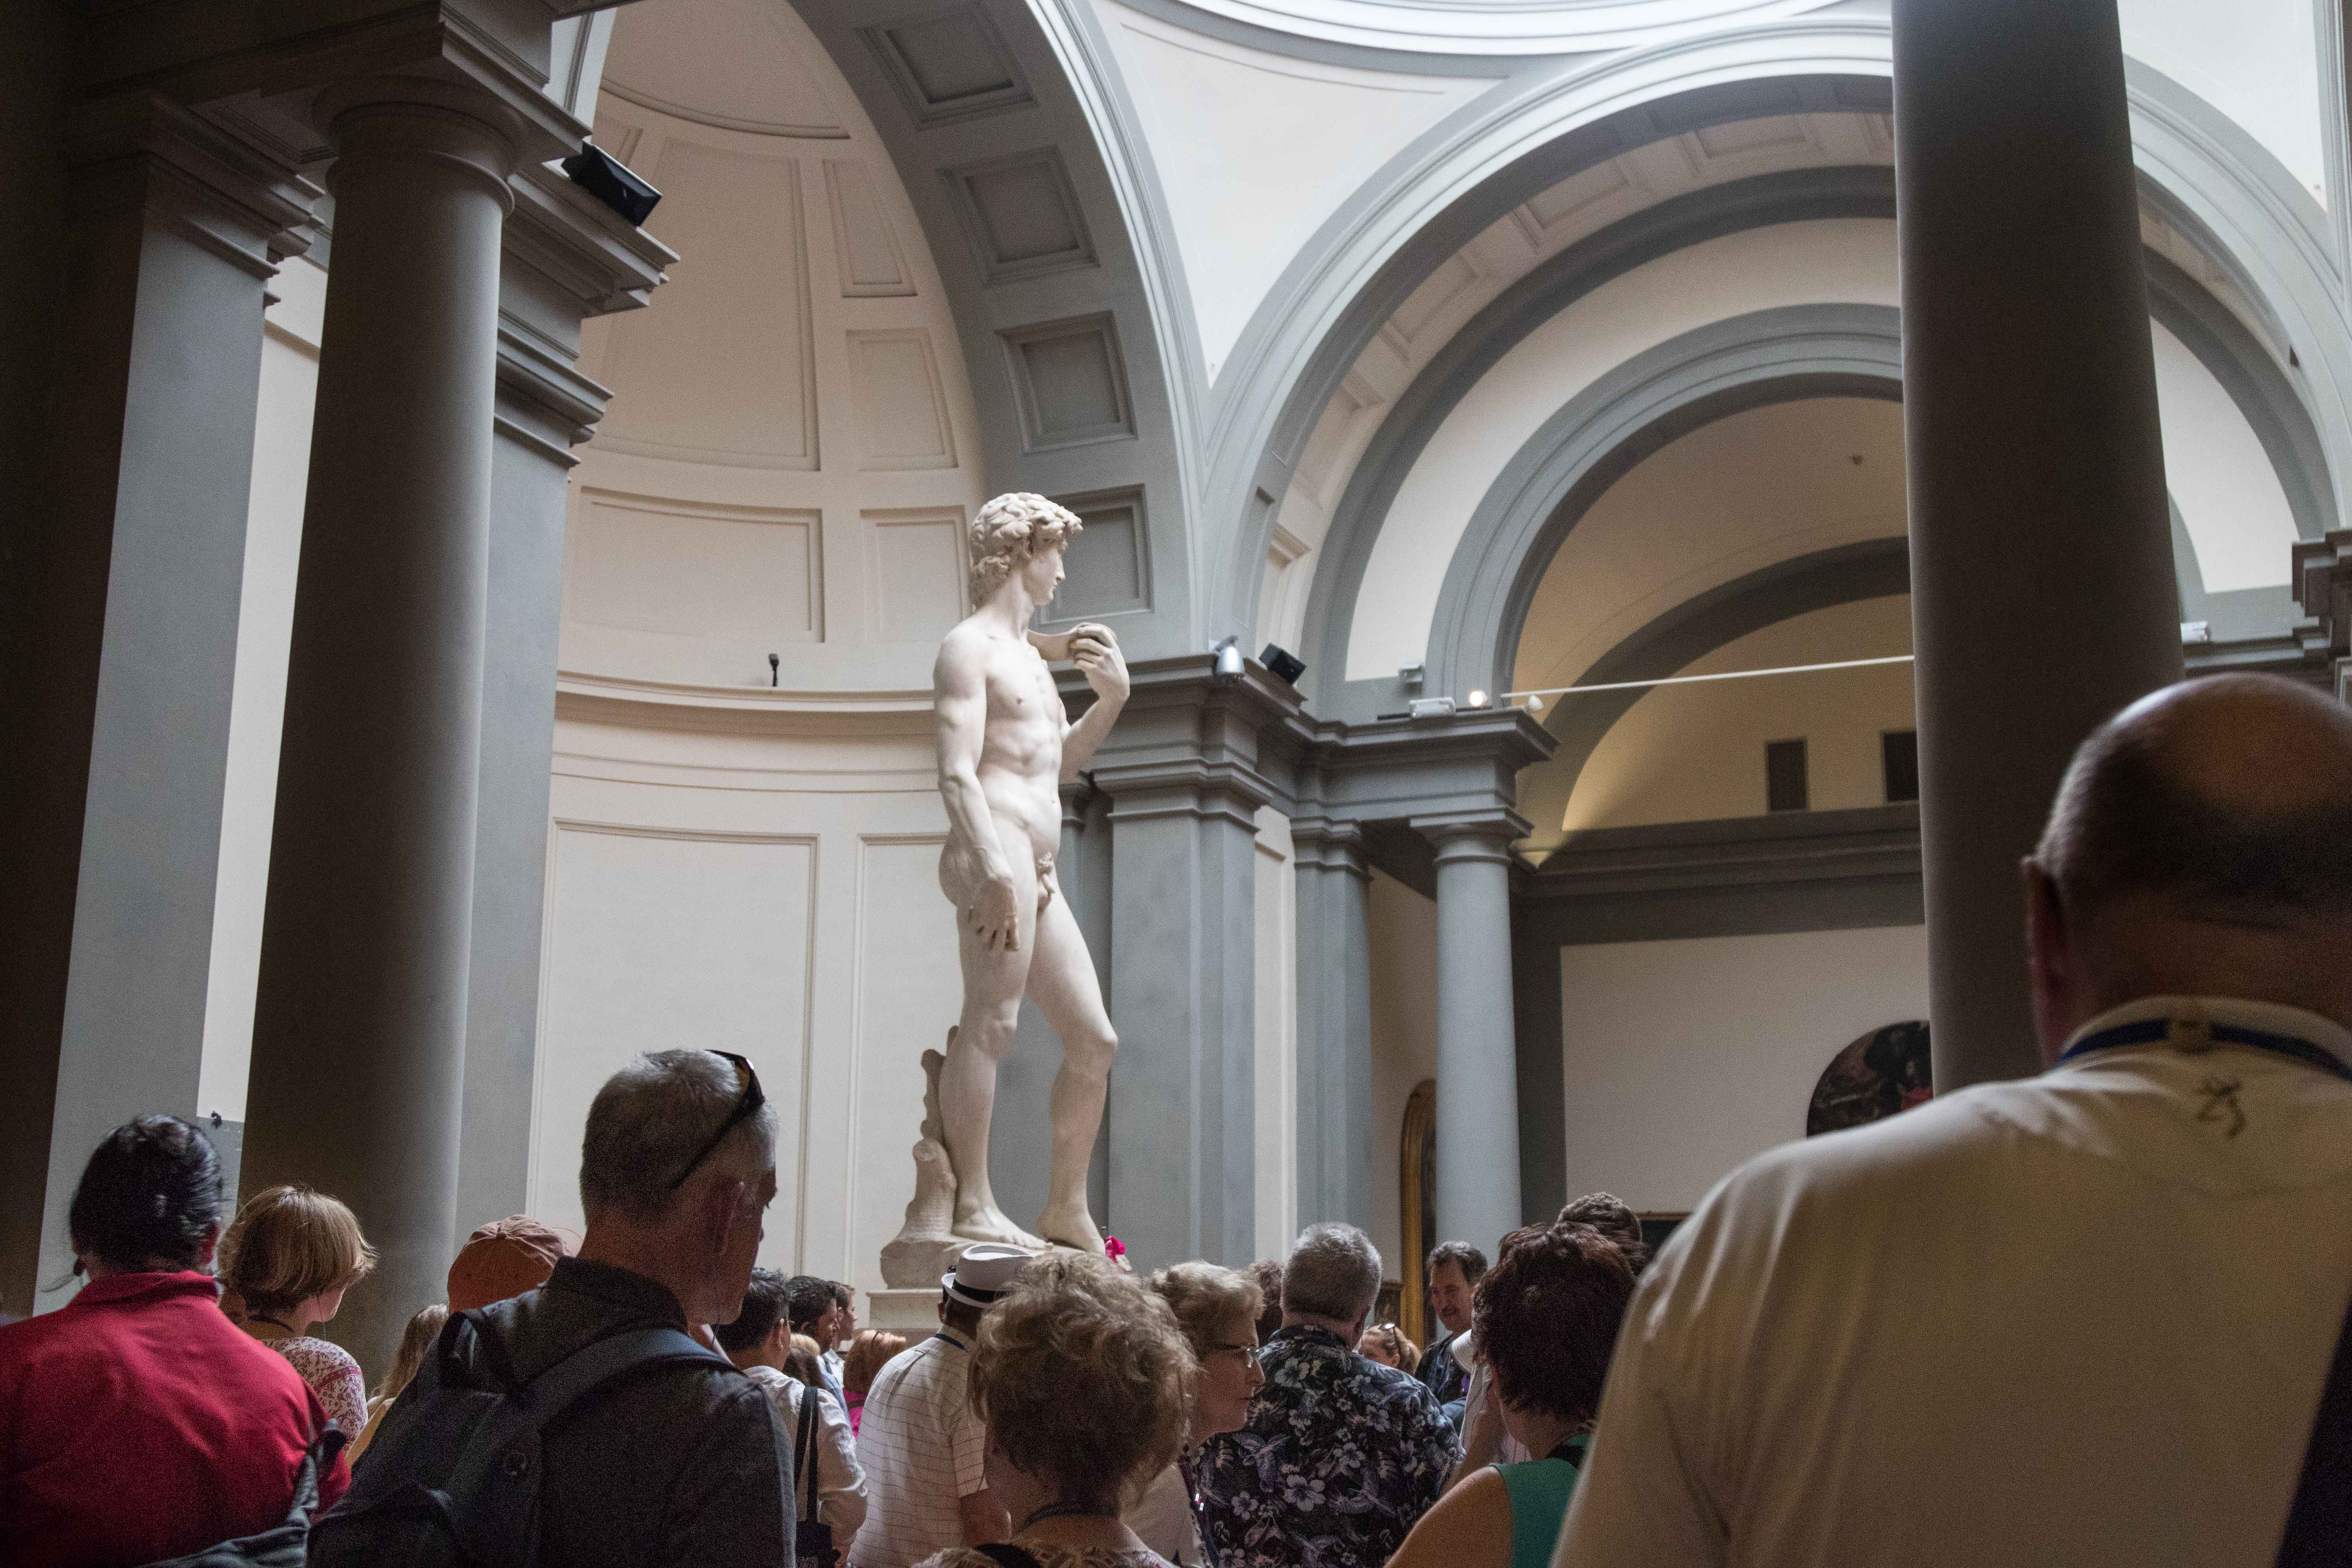 Mediterranean Cruise: Florence - Accademia Gallery   https://www.roseclearfield.com